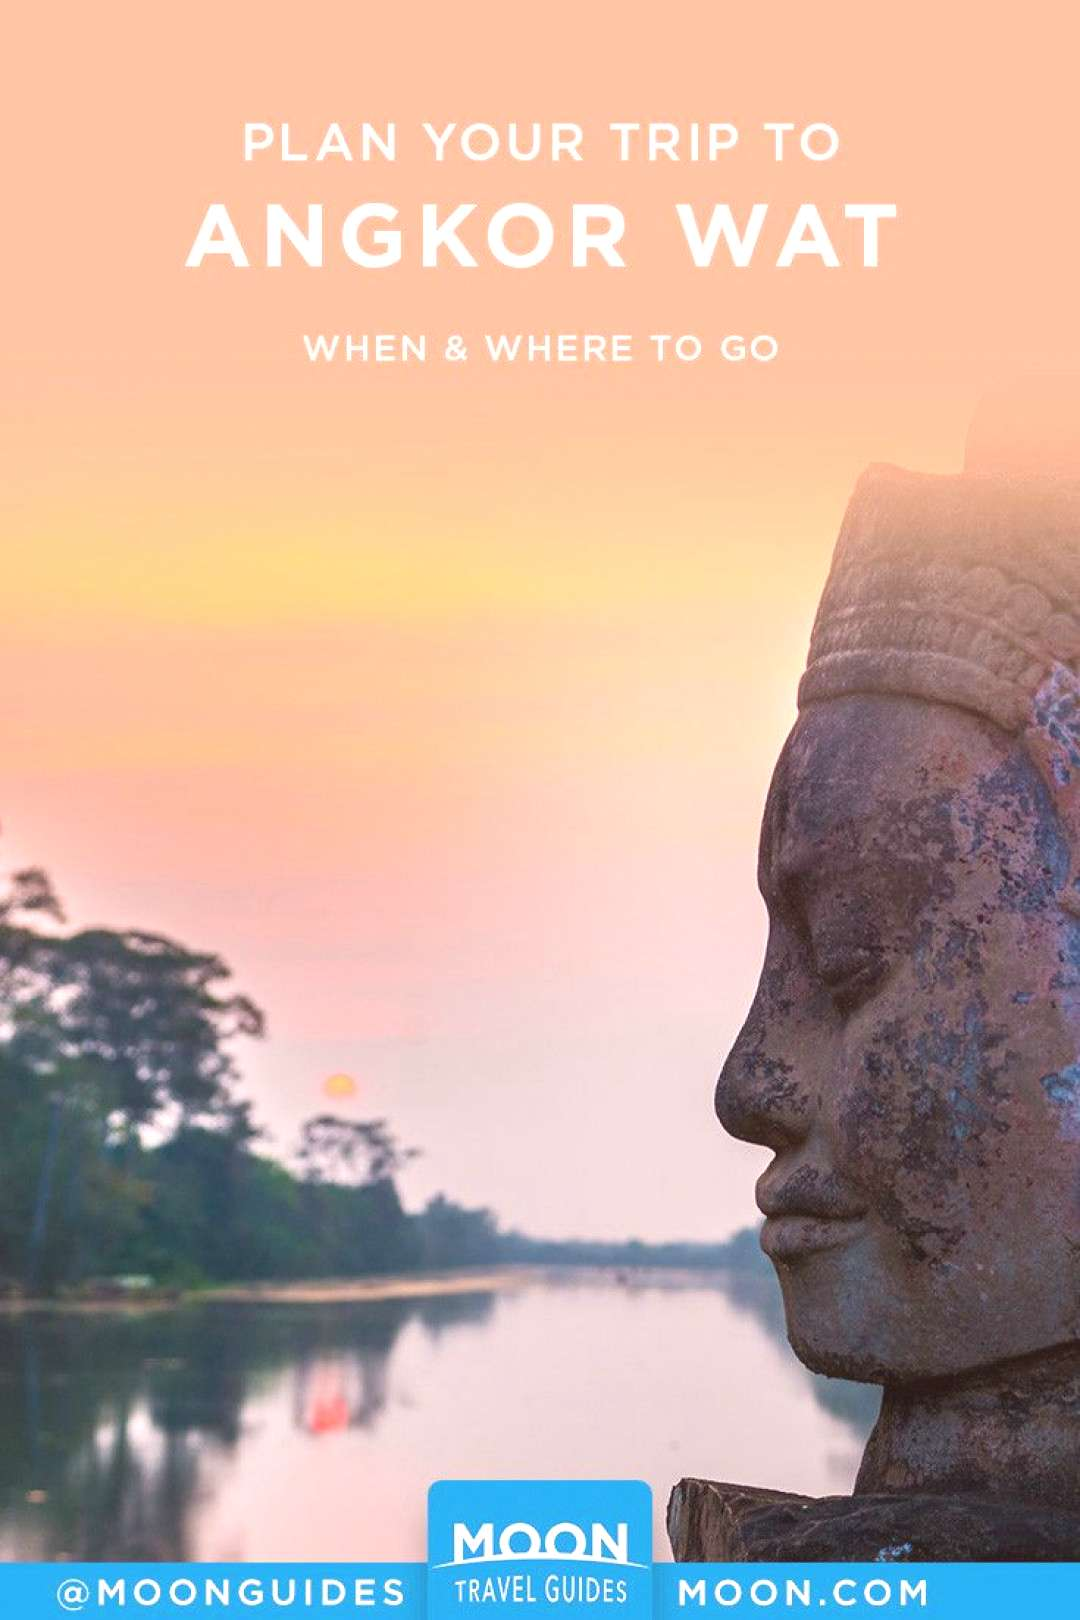 Planning Your Trip to Angkor Wat Get started planning your trip of a lifetime to Angkor Wat. Find o